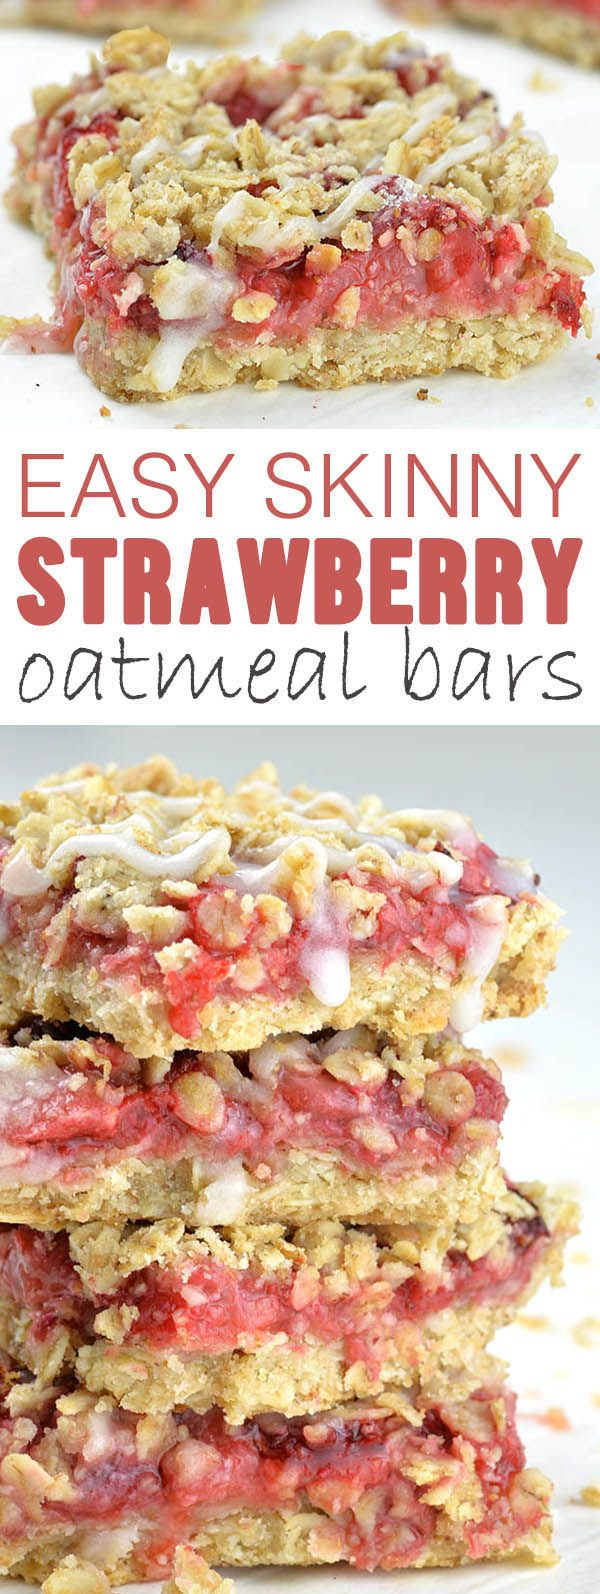 Easy Skinny Strawberry Oatmeal Bars